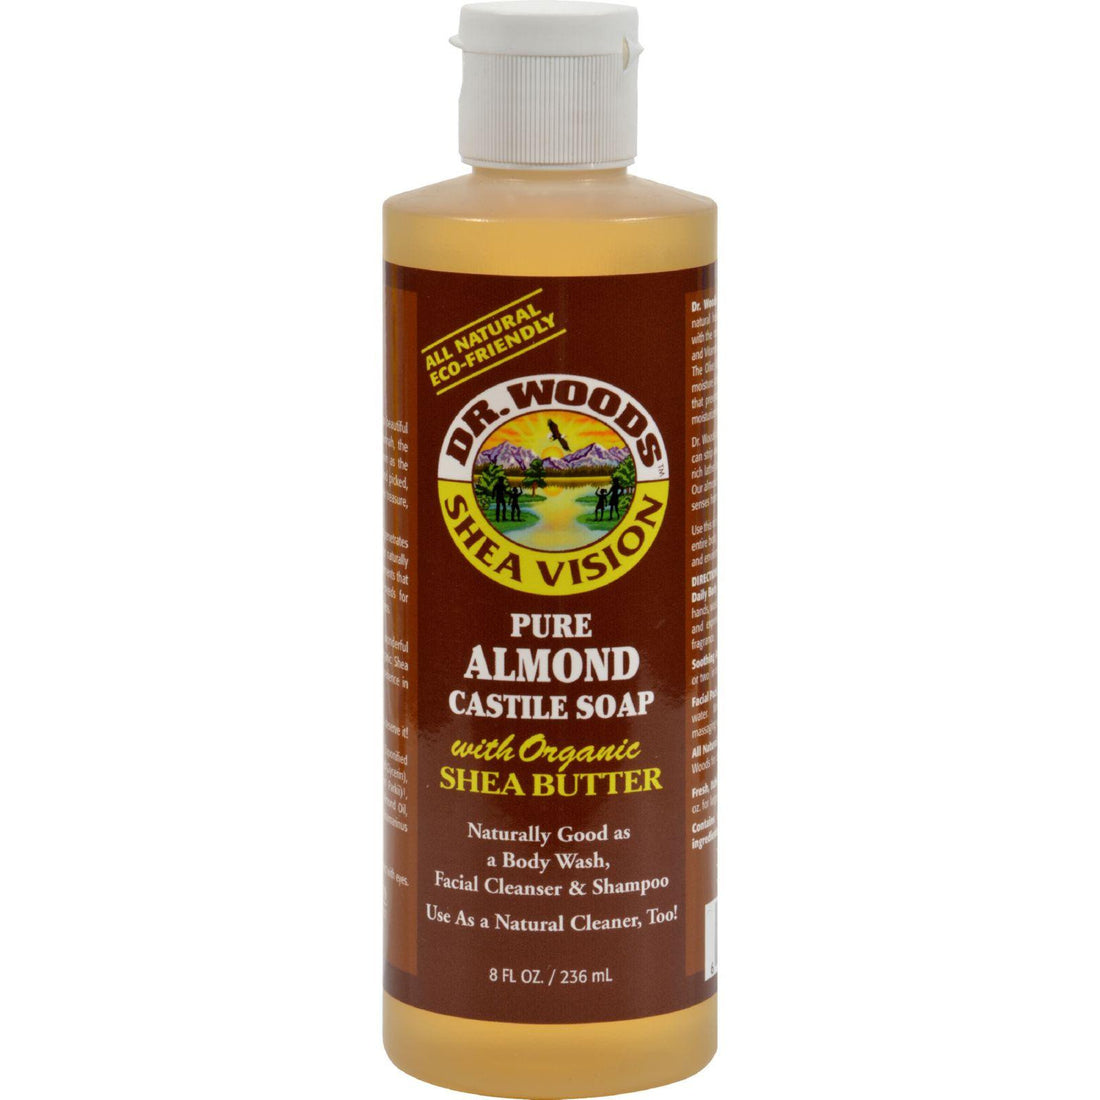 Mother Mantis: Dr. Woods Shea Vision Pure Castile Soap Almond With Organic Shea Butter - 8 Fl Oz Dr. Woods